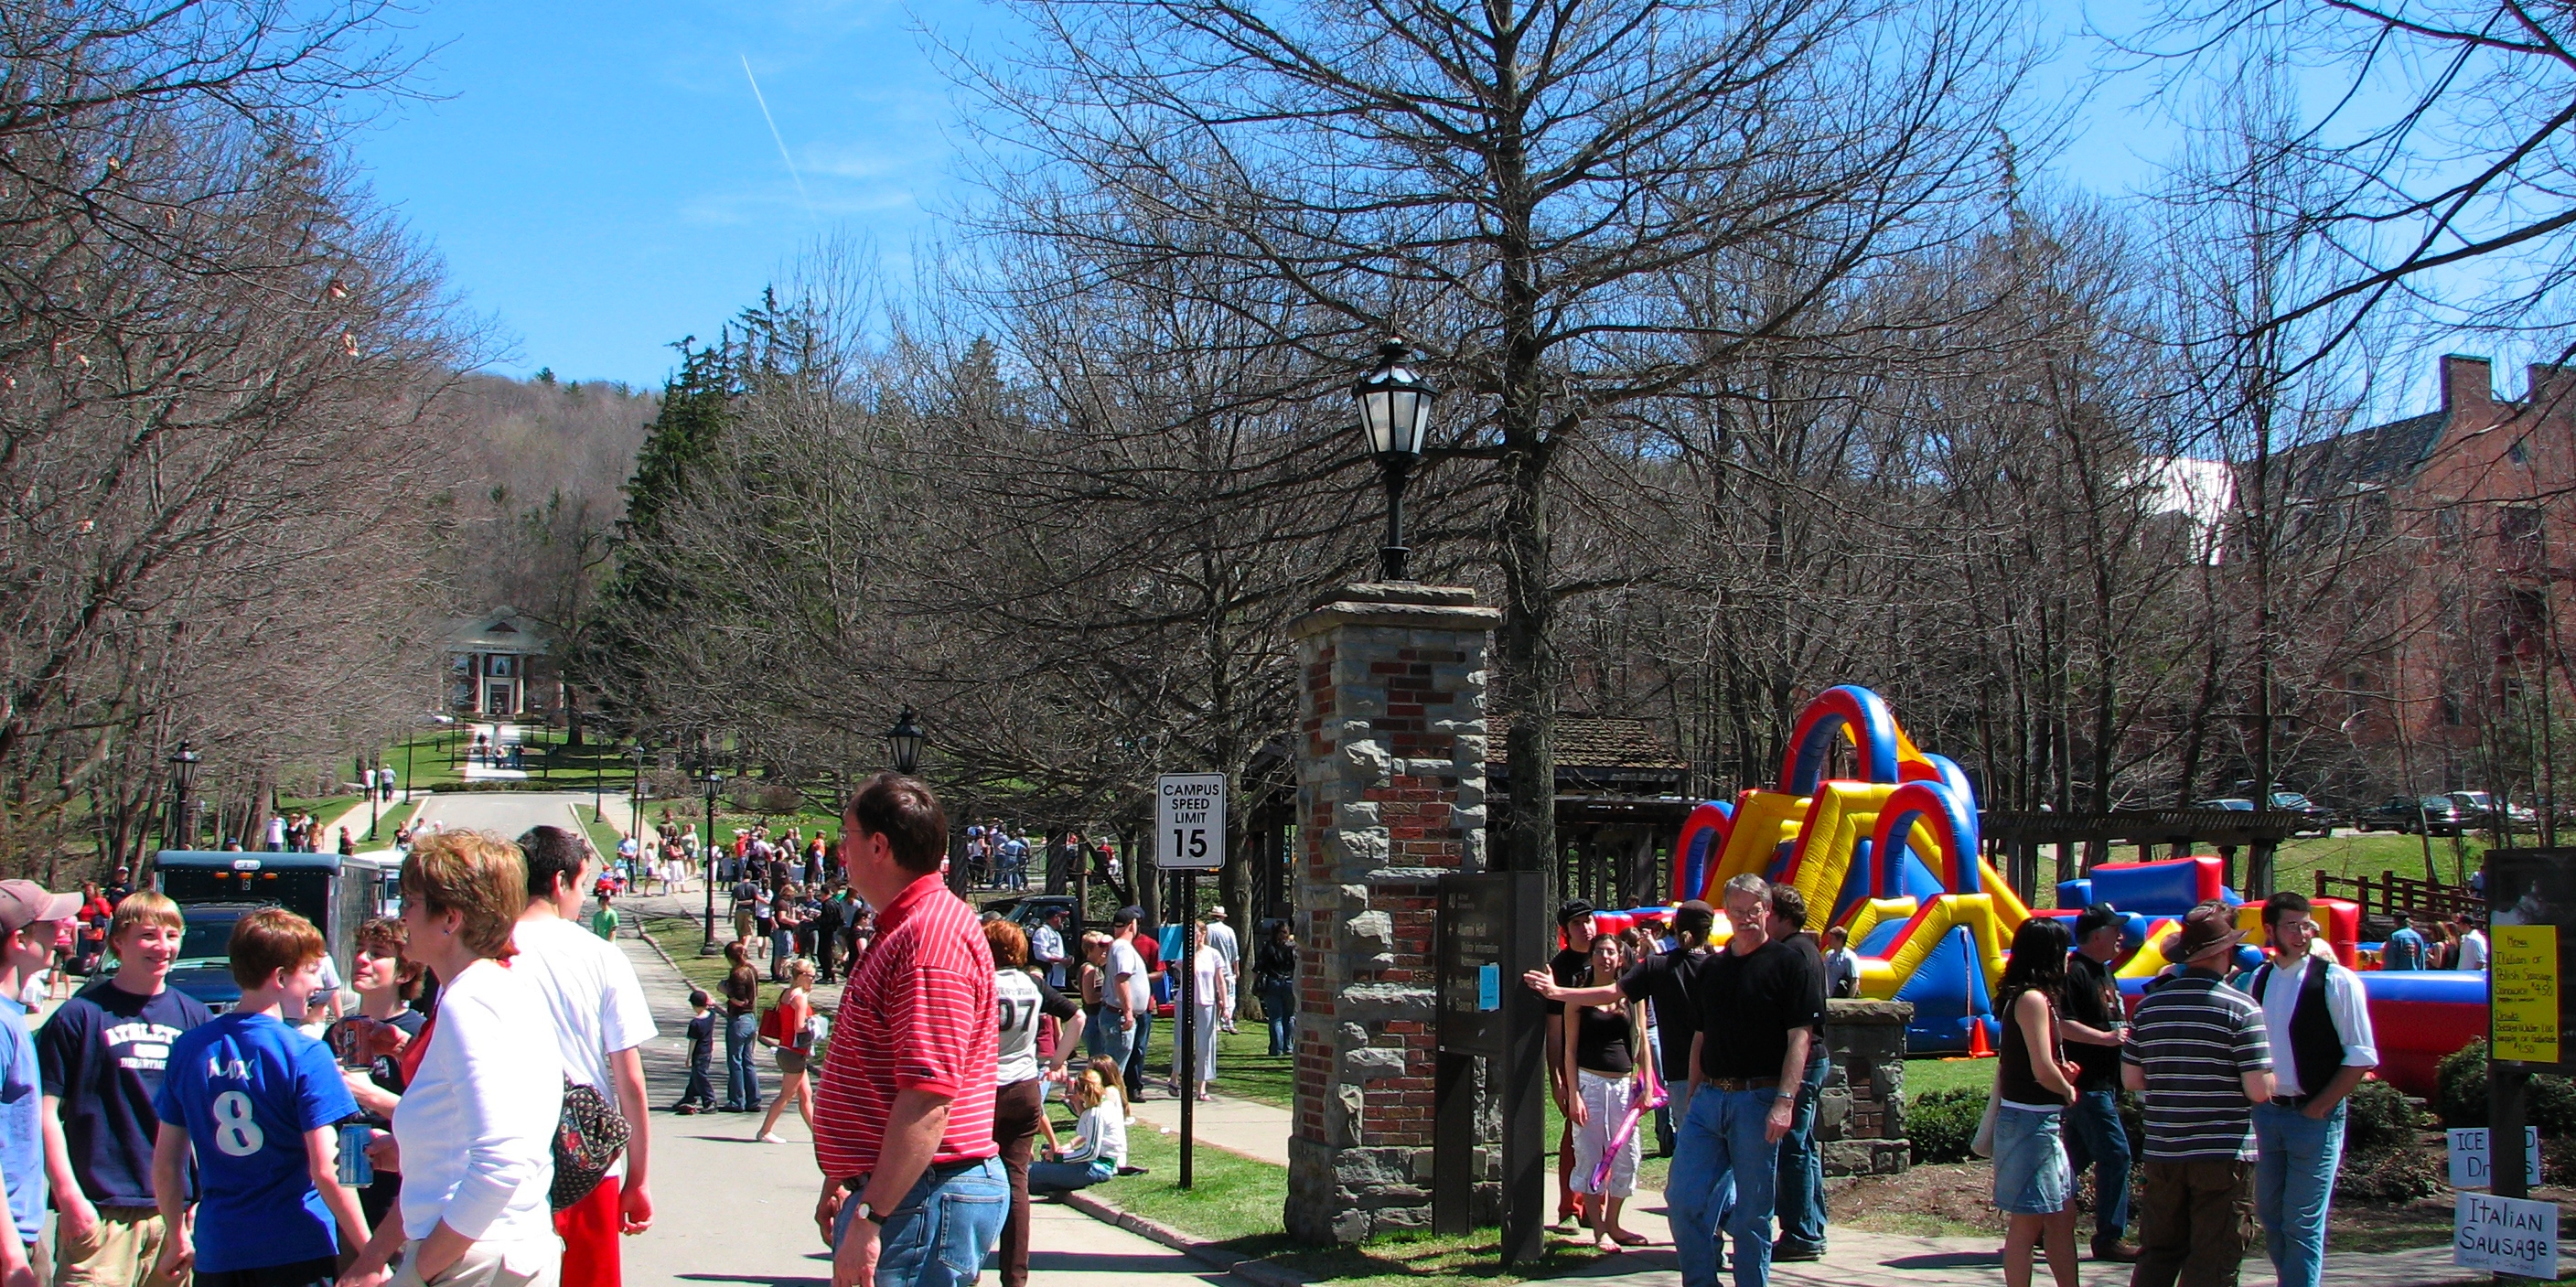 A crowd at Hot Dog Day 2007. Alfred University's Howell Hall and statue of King Alfred are visible on the left.